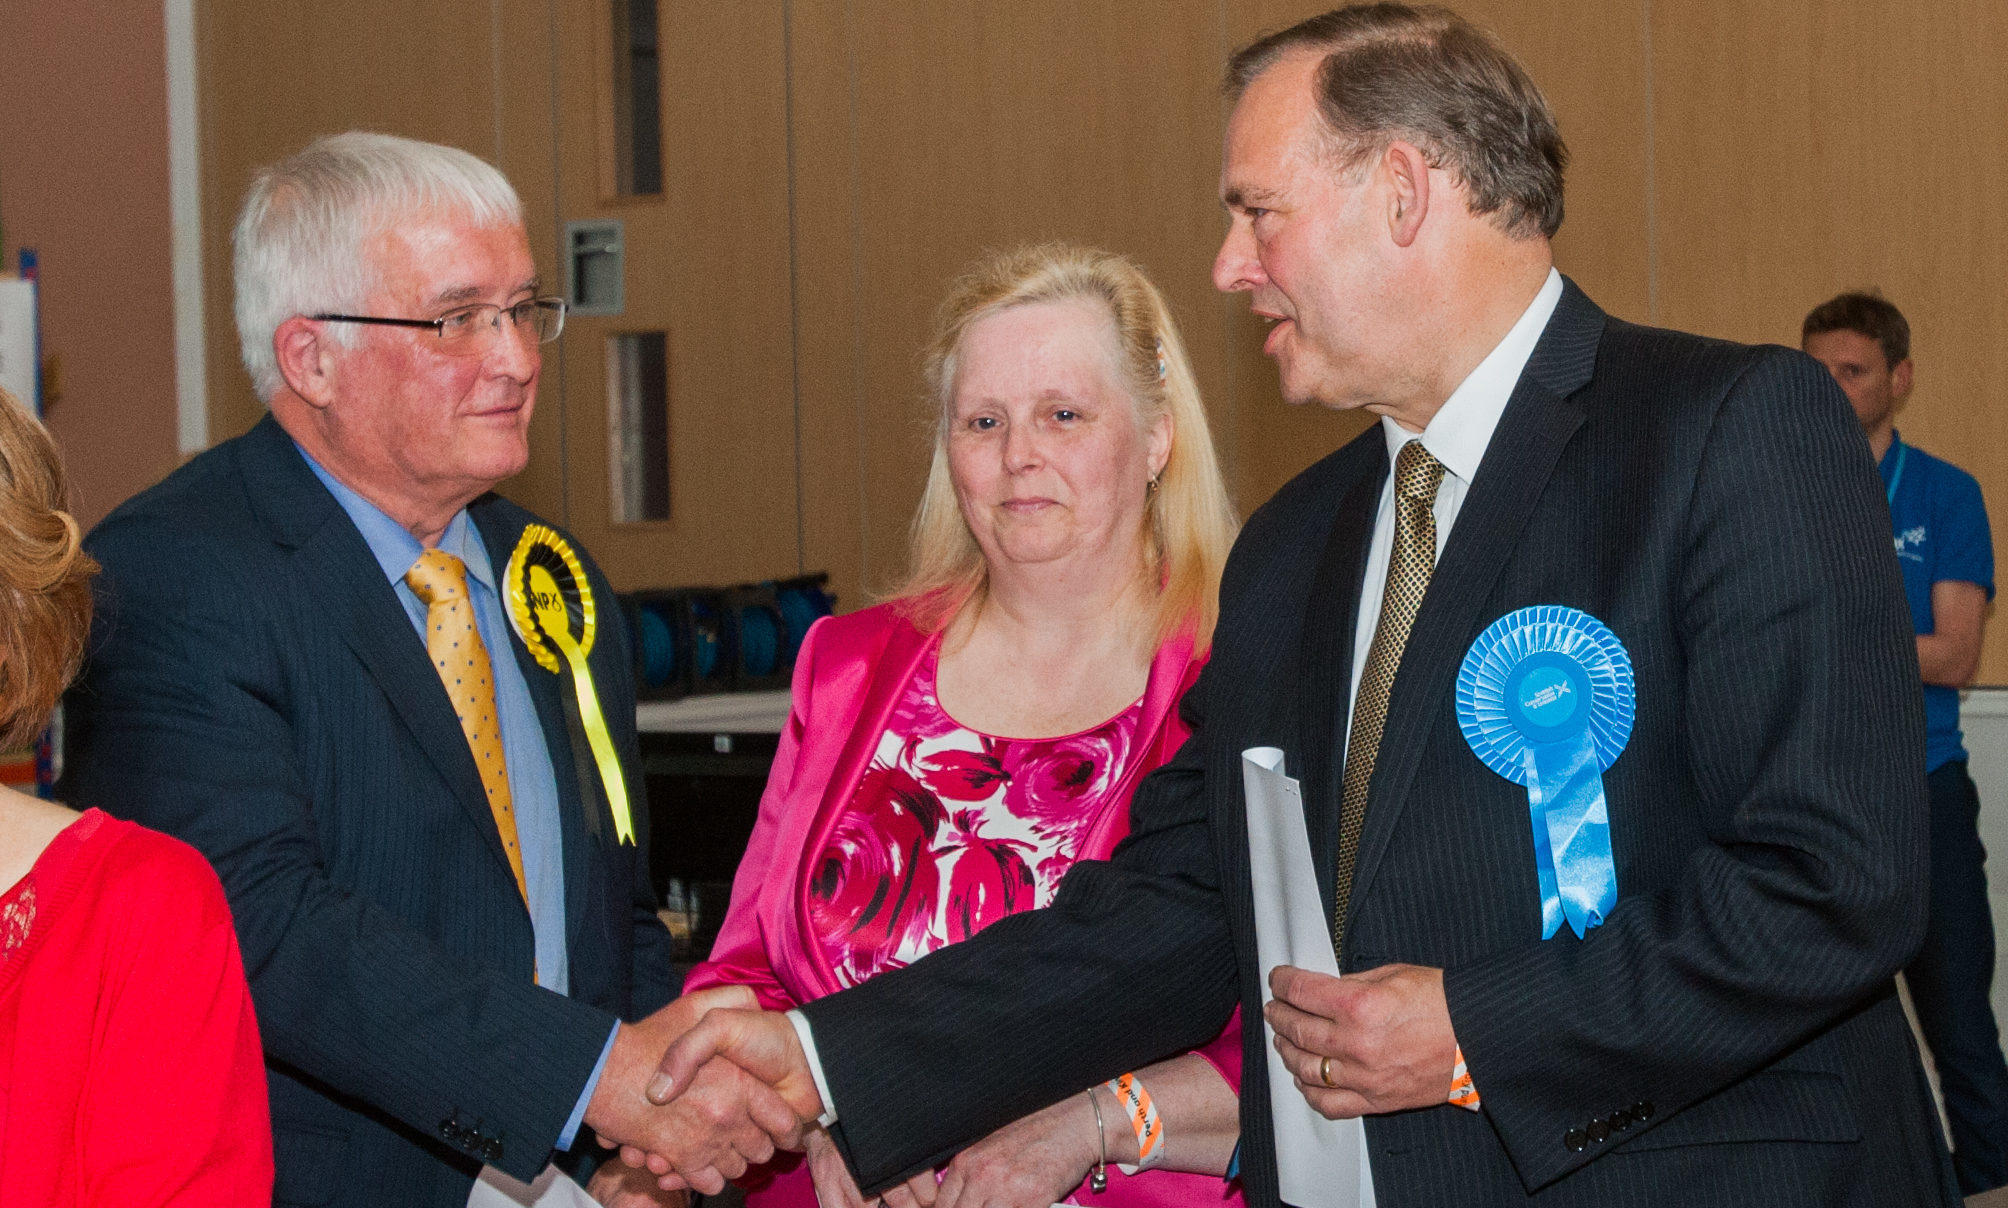 Perthshire Highland ward by-election; John Duff (conservative) wins count at Breadalbane Academy. Picture shows, left to right, John Kellas, Avril Taylor and John Duff.